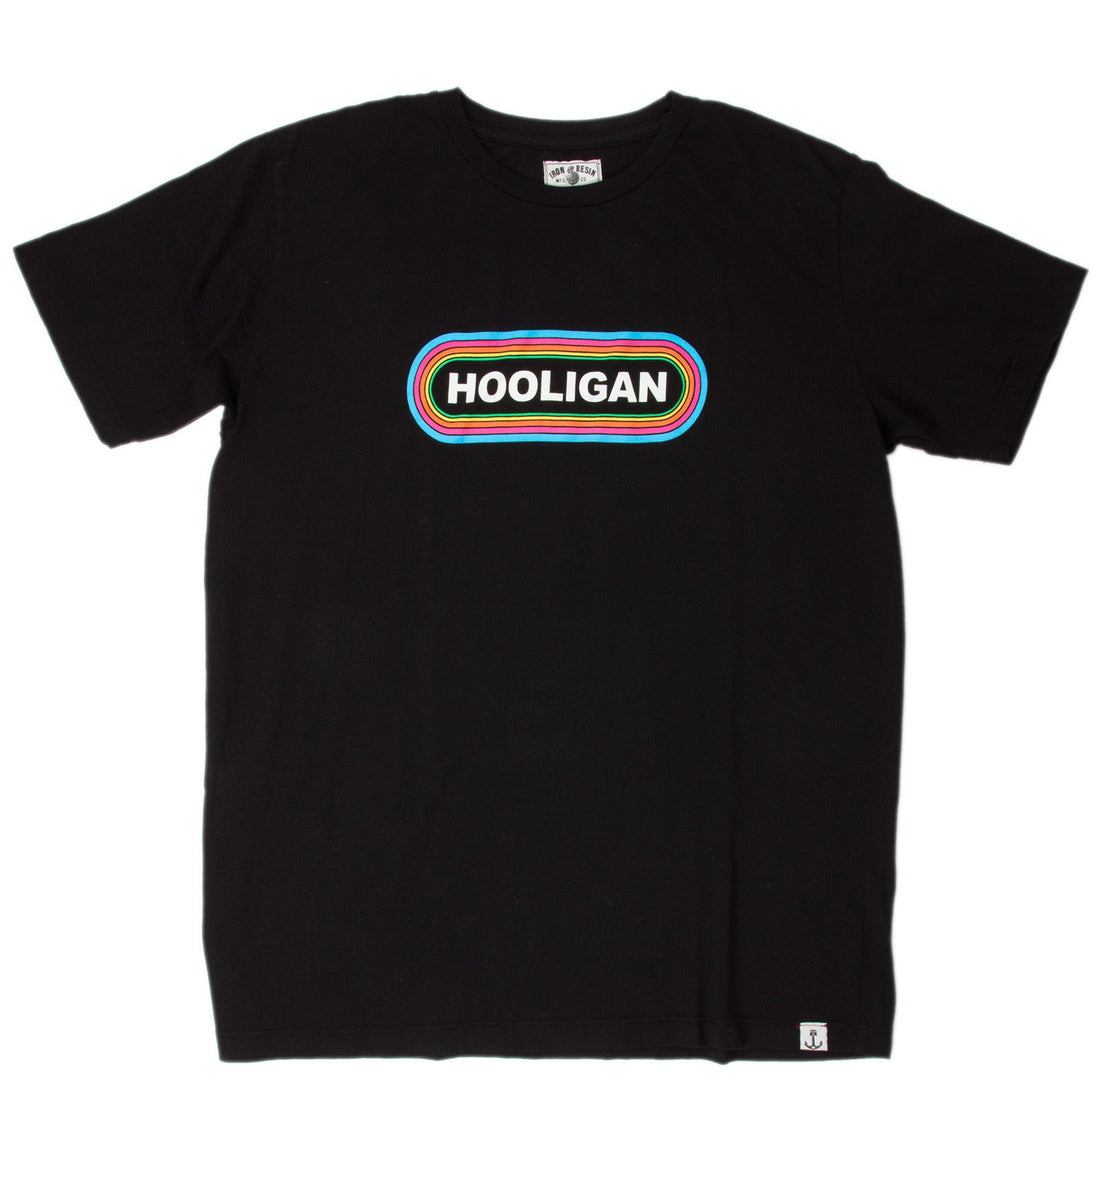 INR Nostalgia Tee - Apparel: Men's: Graphic T-Shirts - Iron and Resin